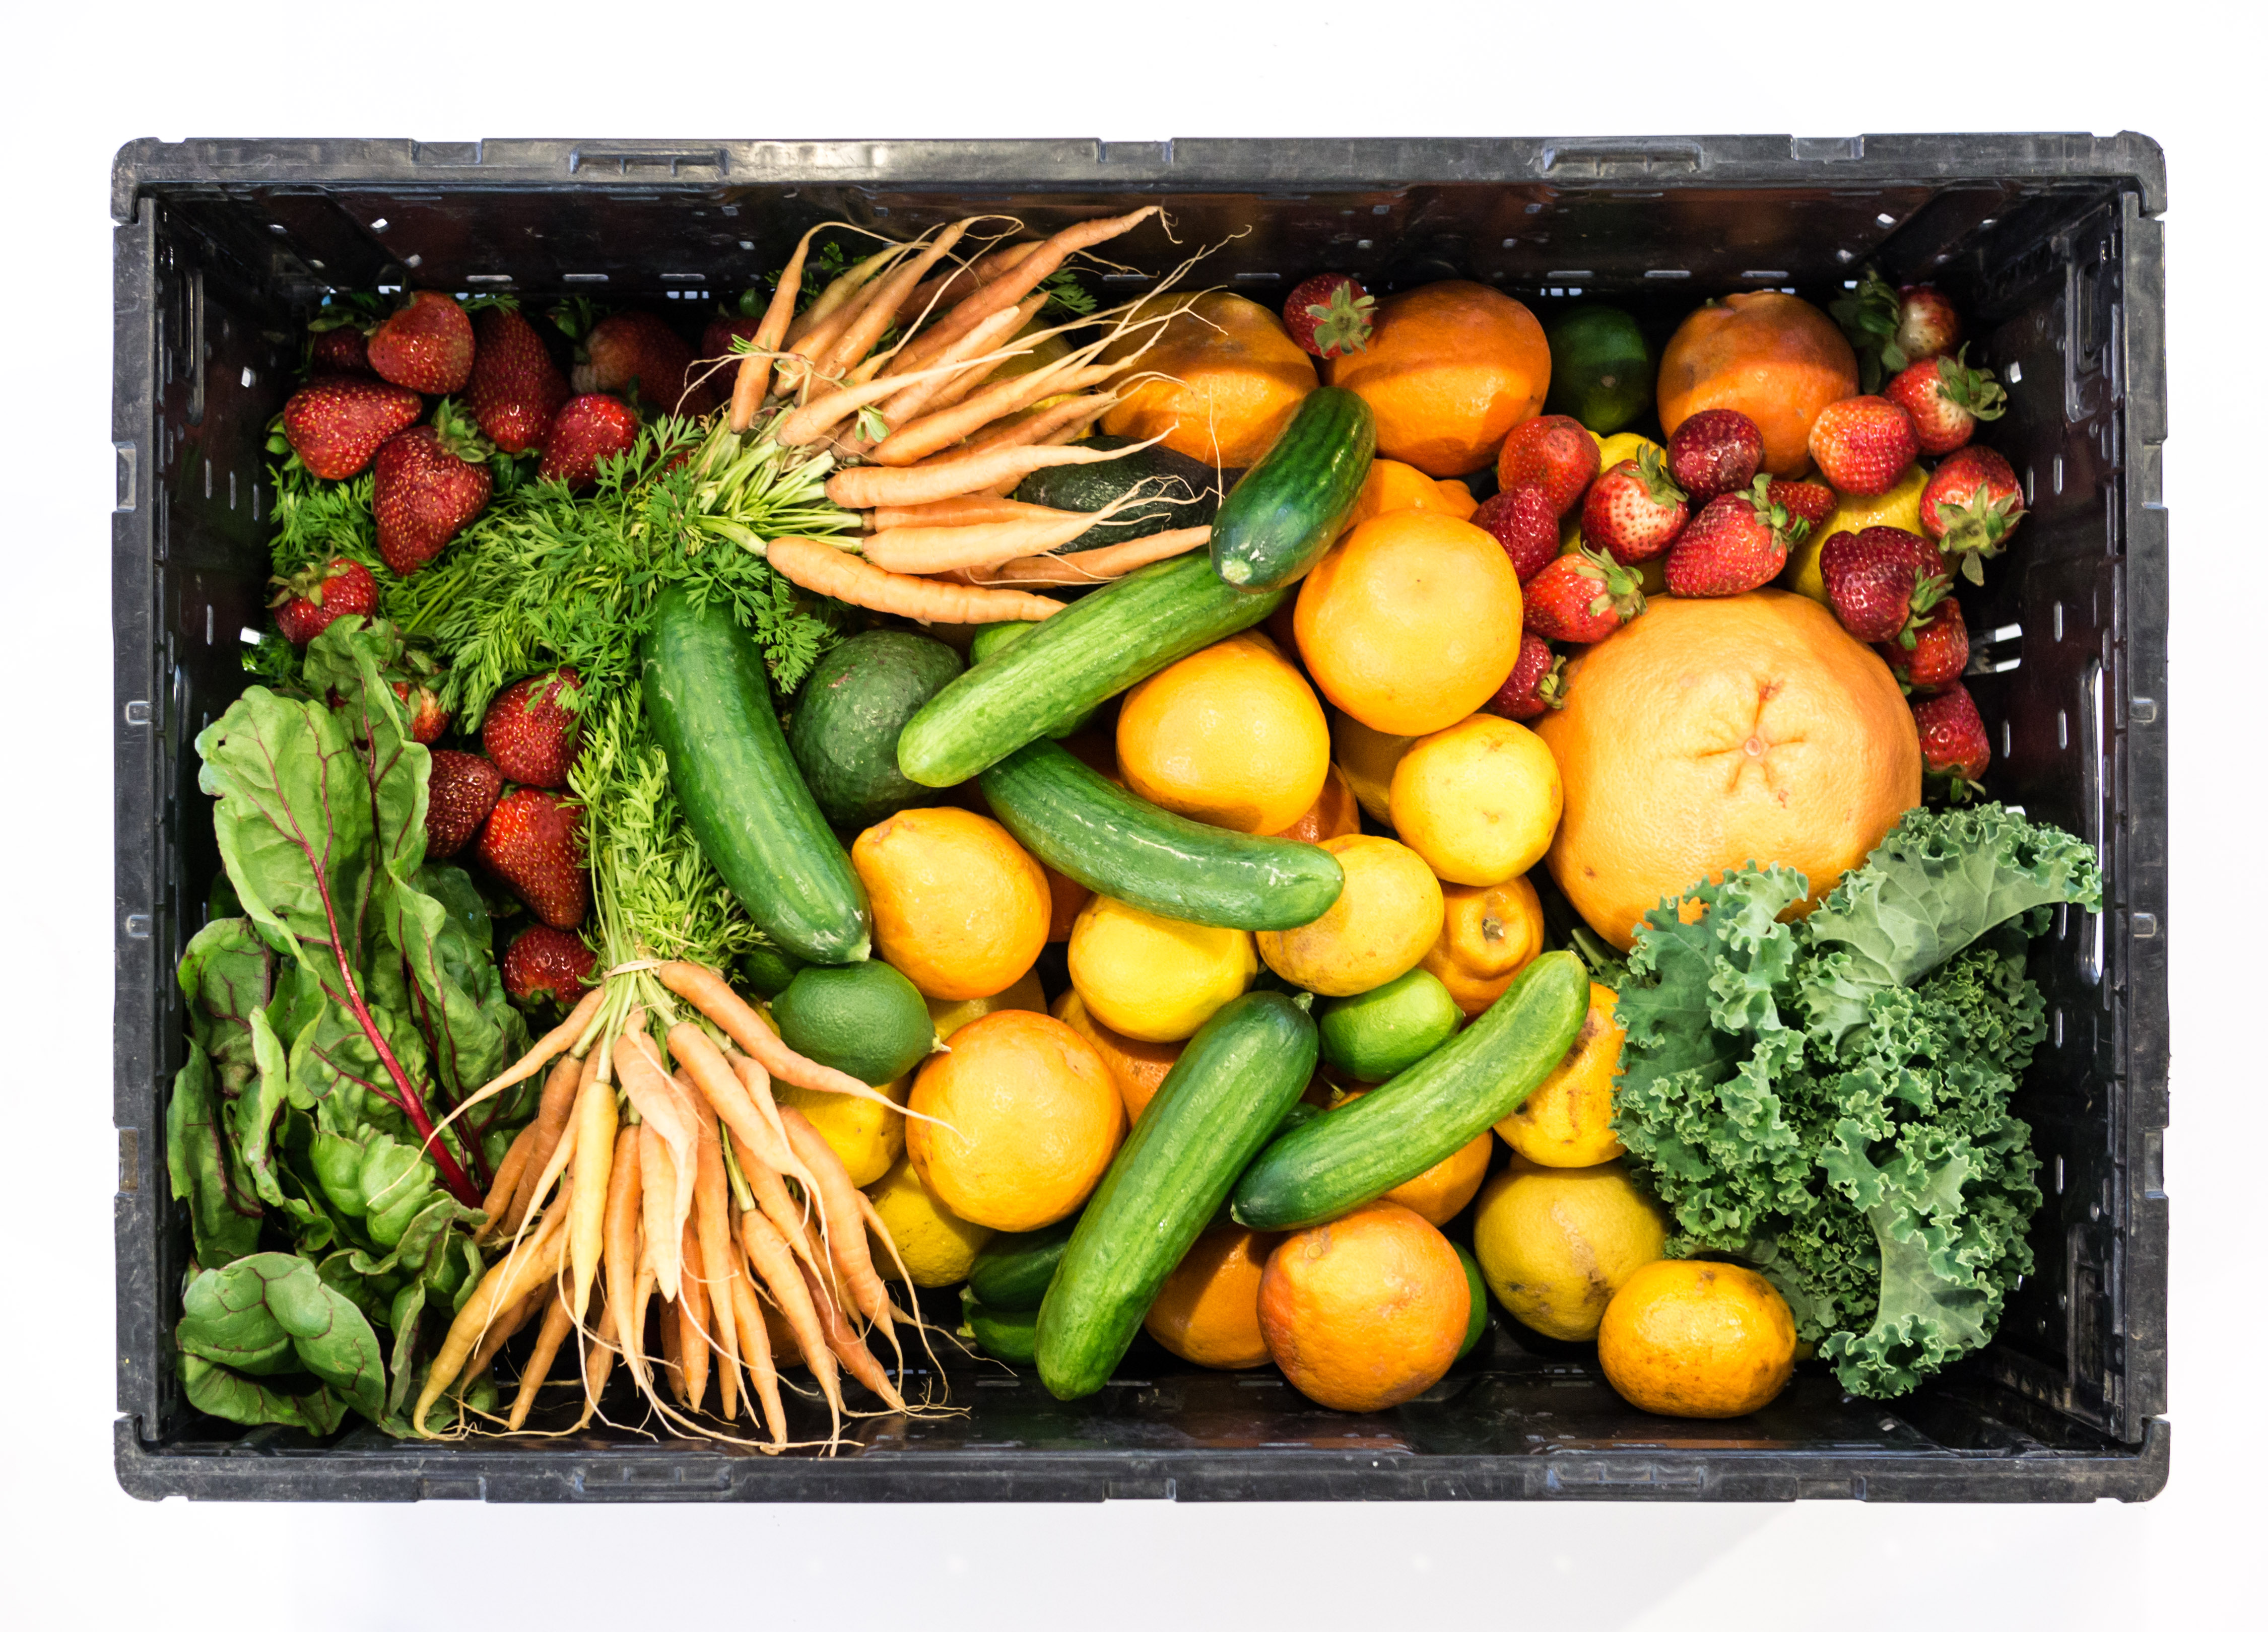 Tips To Get Your Fruits And Veggies During The Holidays